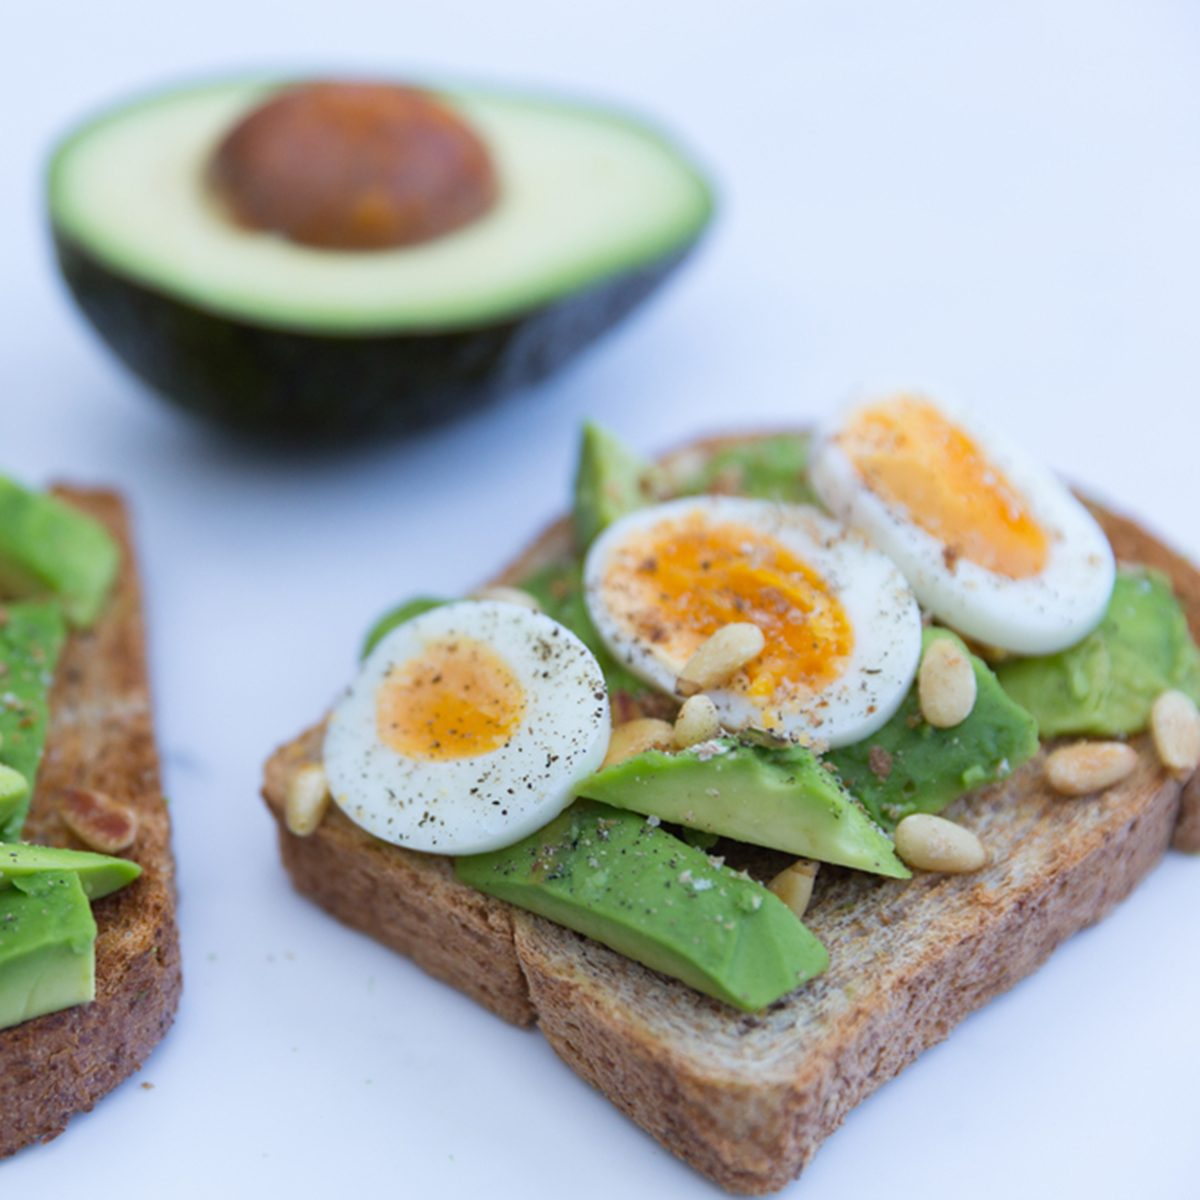 Healthy eggs and avocado on toasted bread